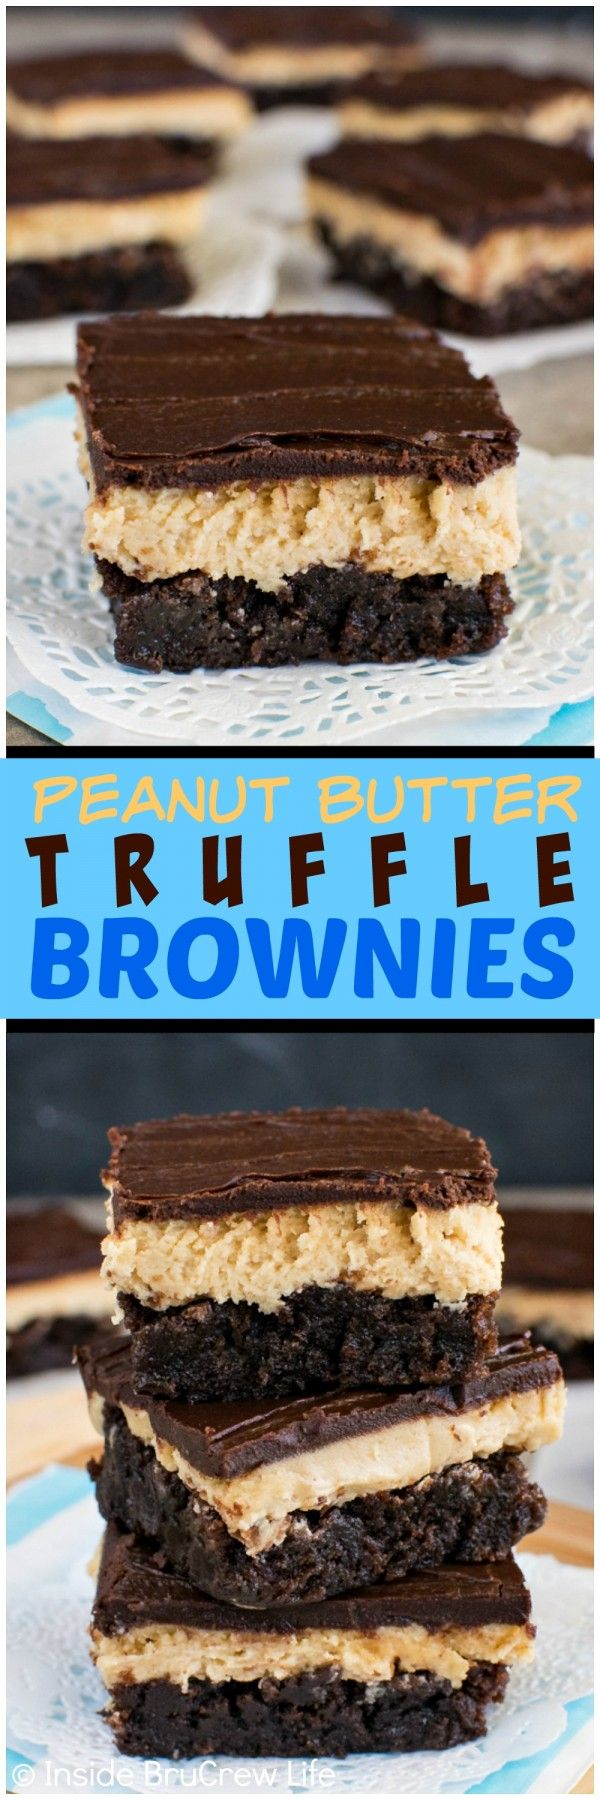 Peanut Butter Truffle Brownies - layers of chocolate and peanut butter will have everyone going nuts for this awesome dessert recipe!